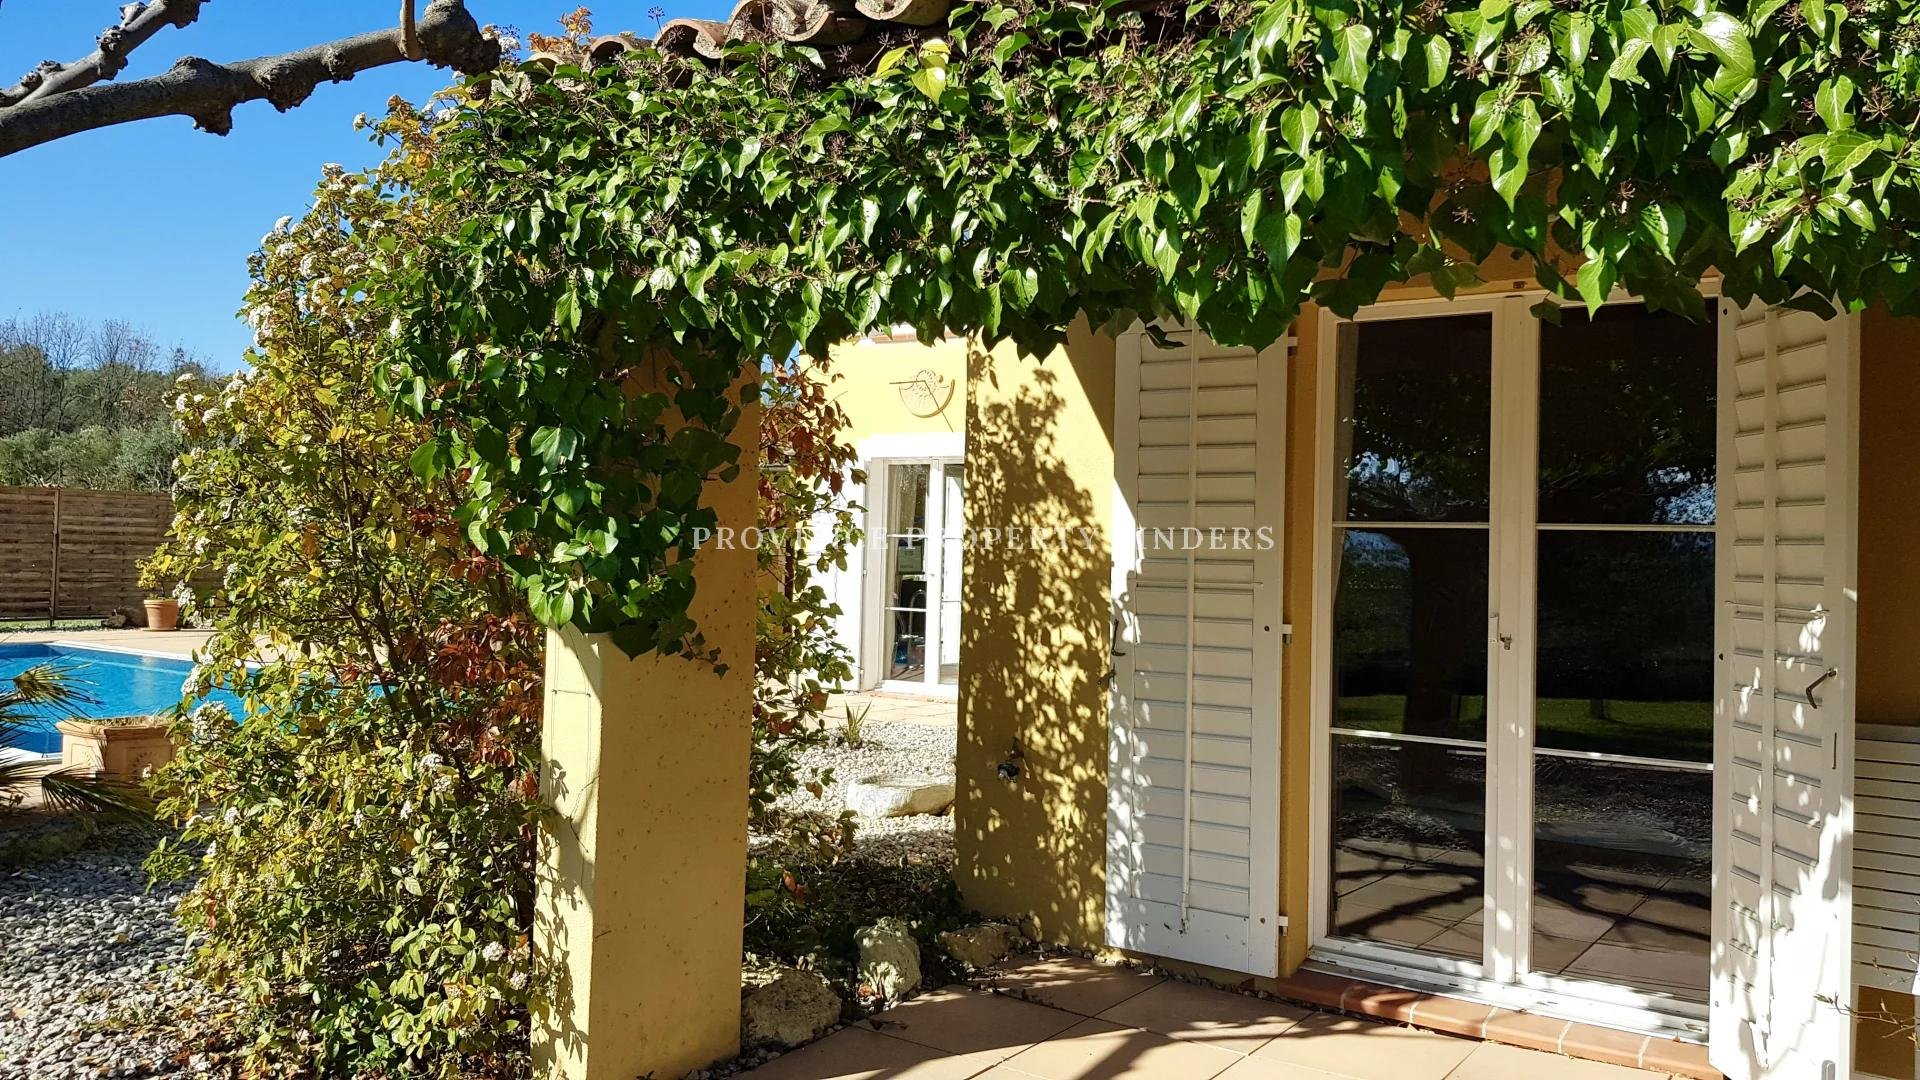 Sunny villa in the Provence, possibility to start small b&b.